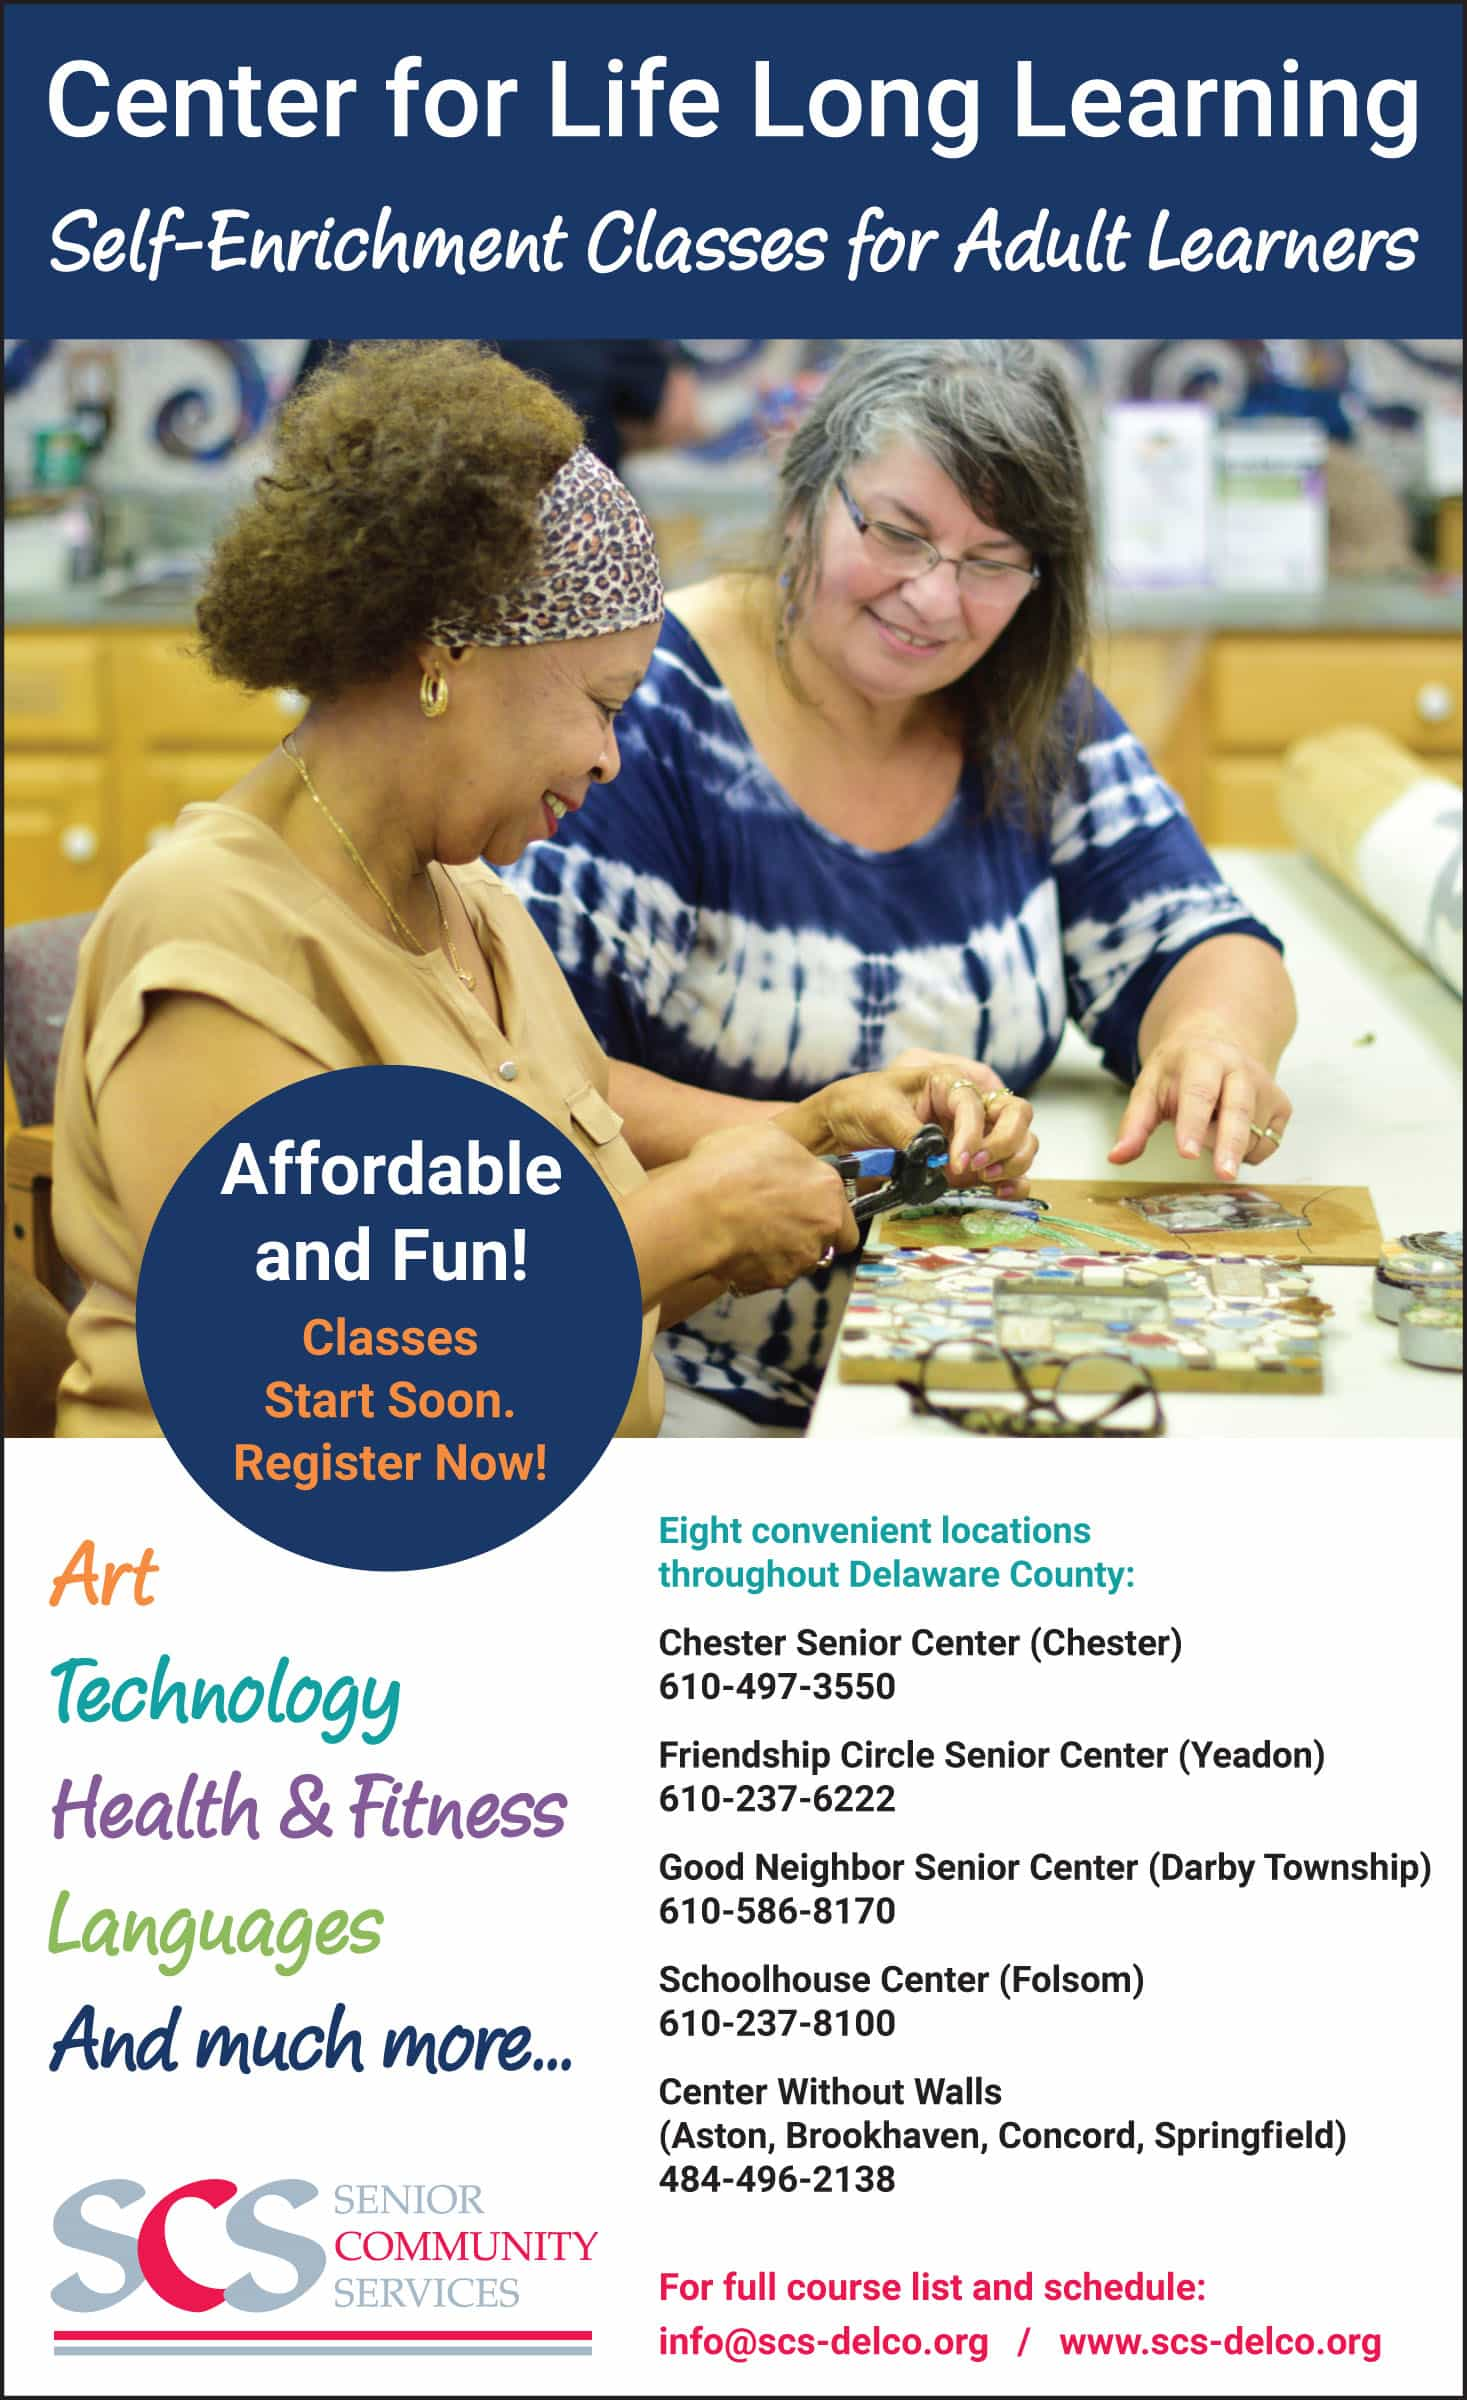 Newspaper ad for Senior Community Services (SCS) Center for Lifelong Learning